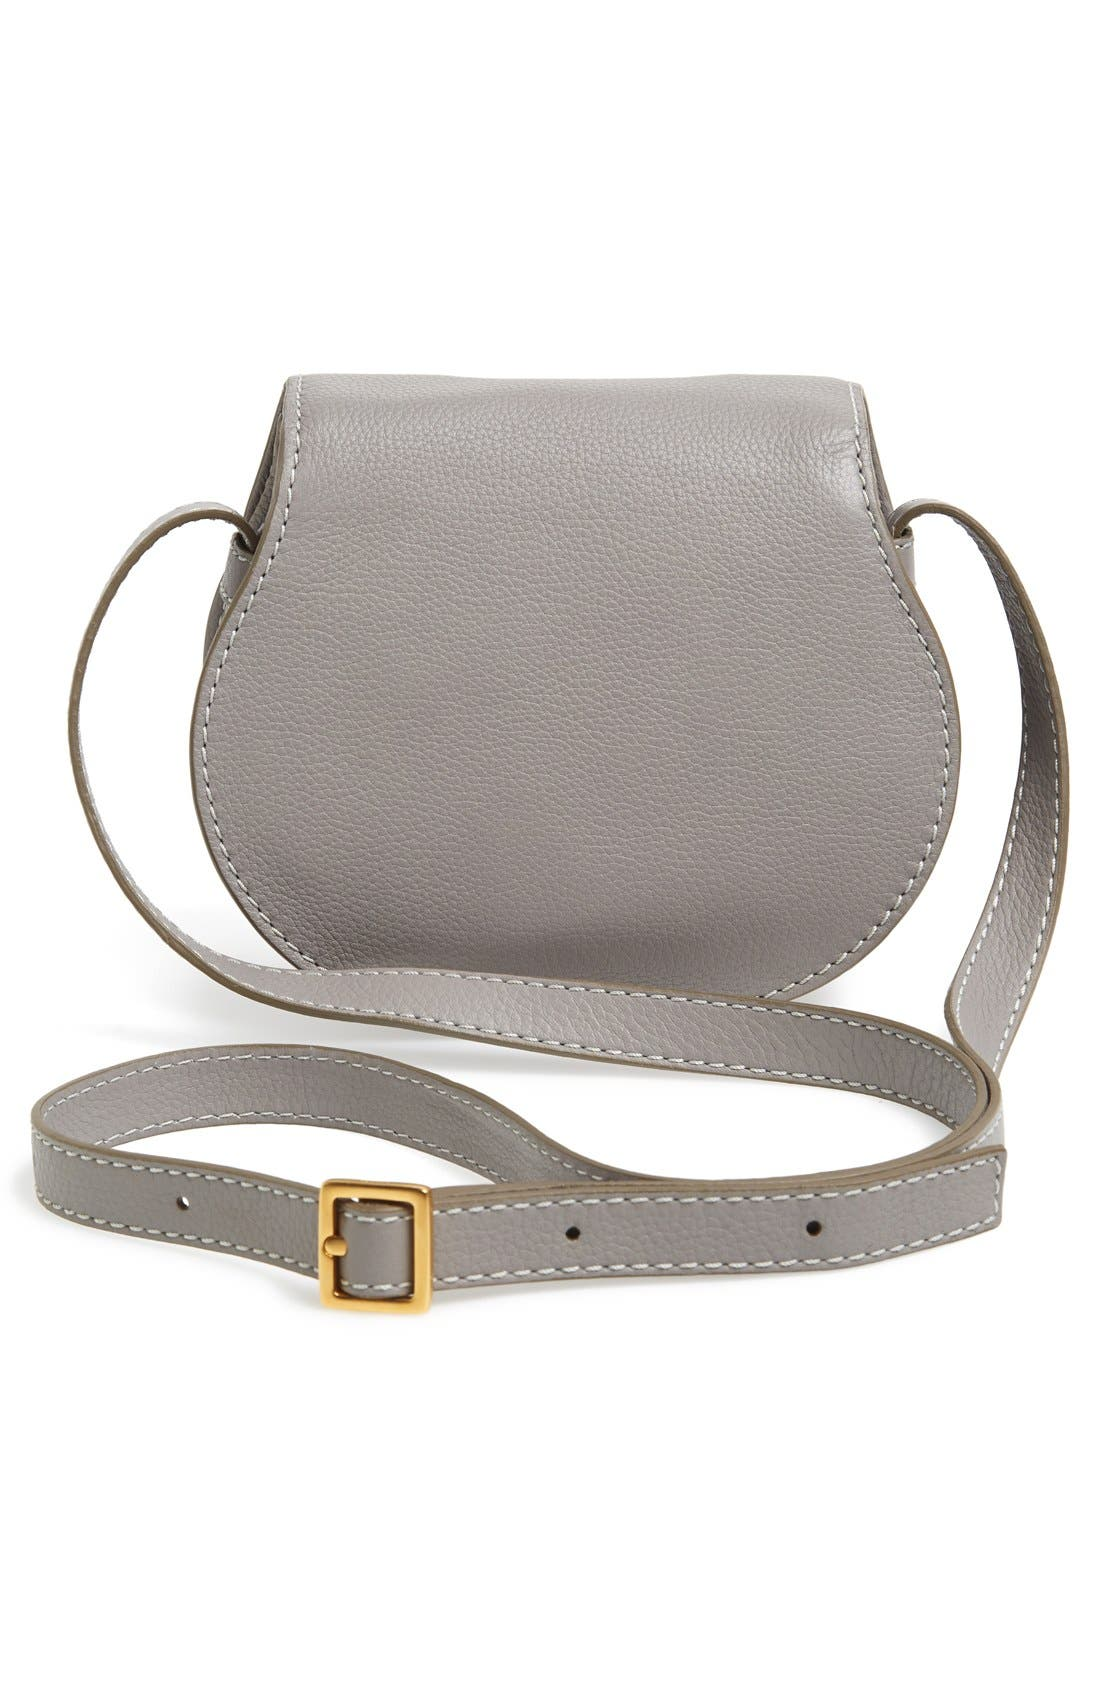 'Mini Marcie' Leather Crossbody Bag,                             Alternate thumbnail 3, color,                             CASHMERE GREY